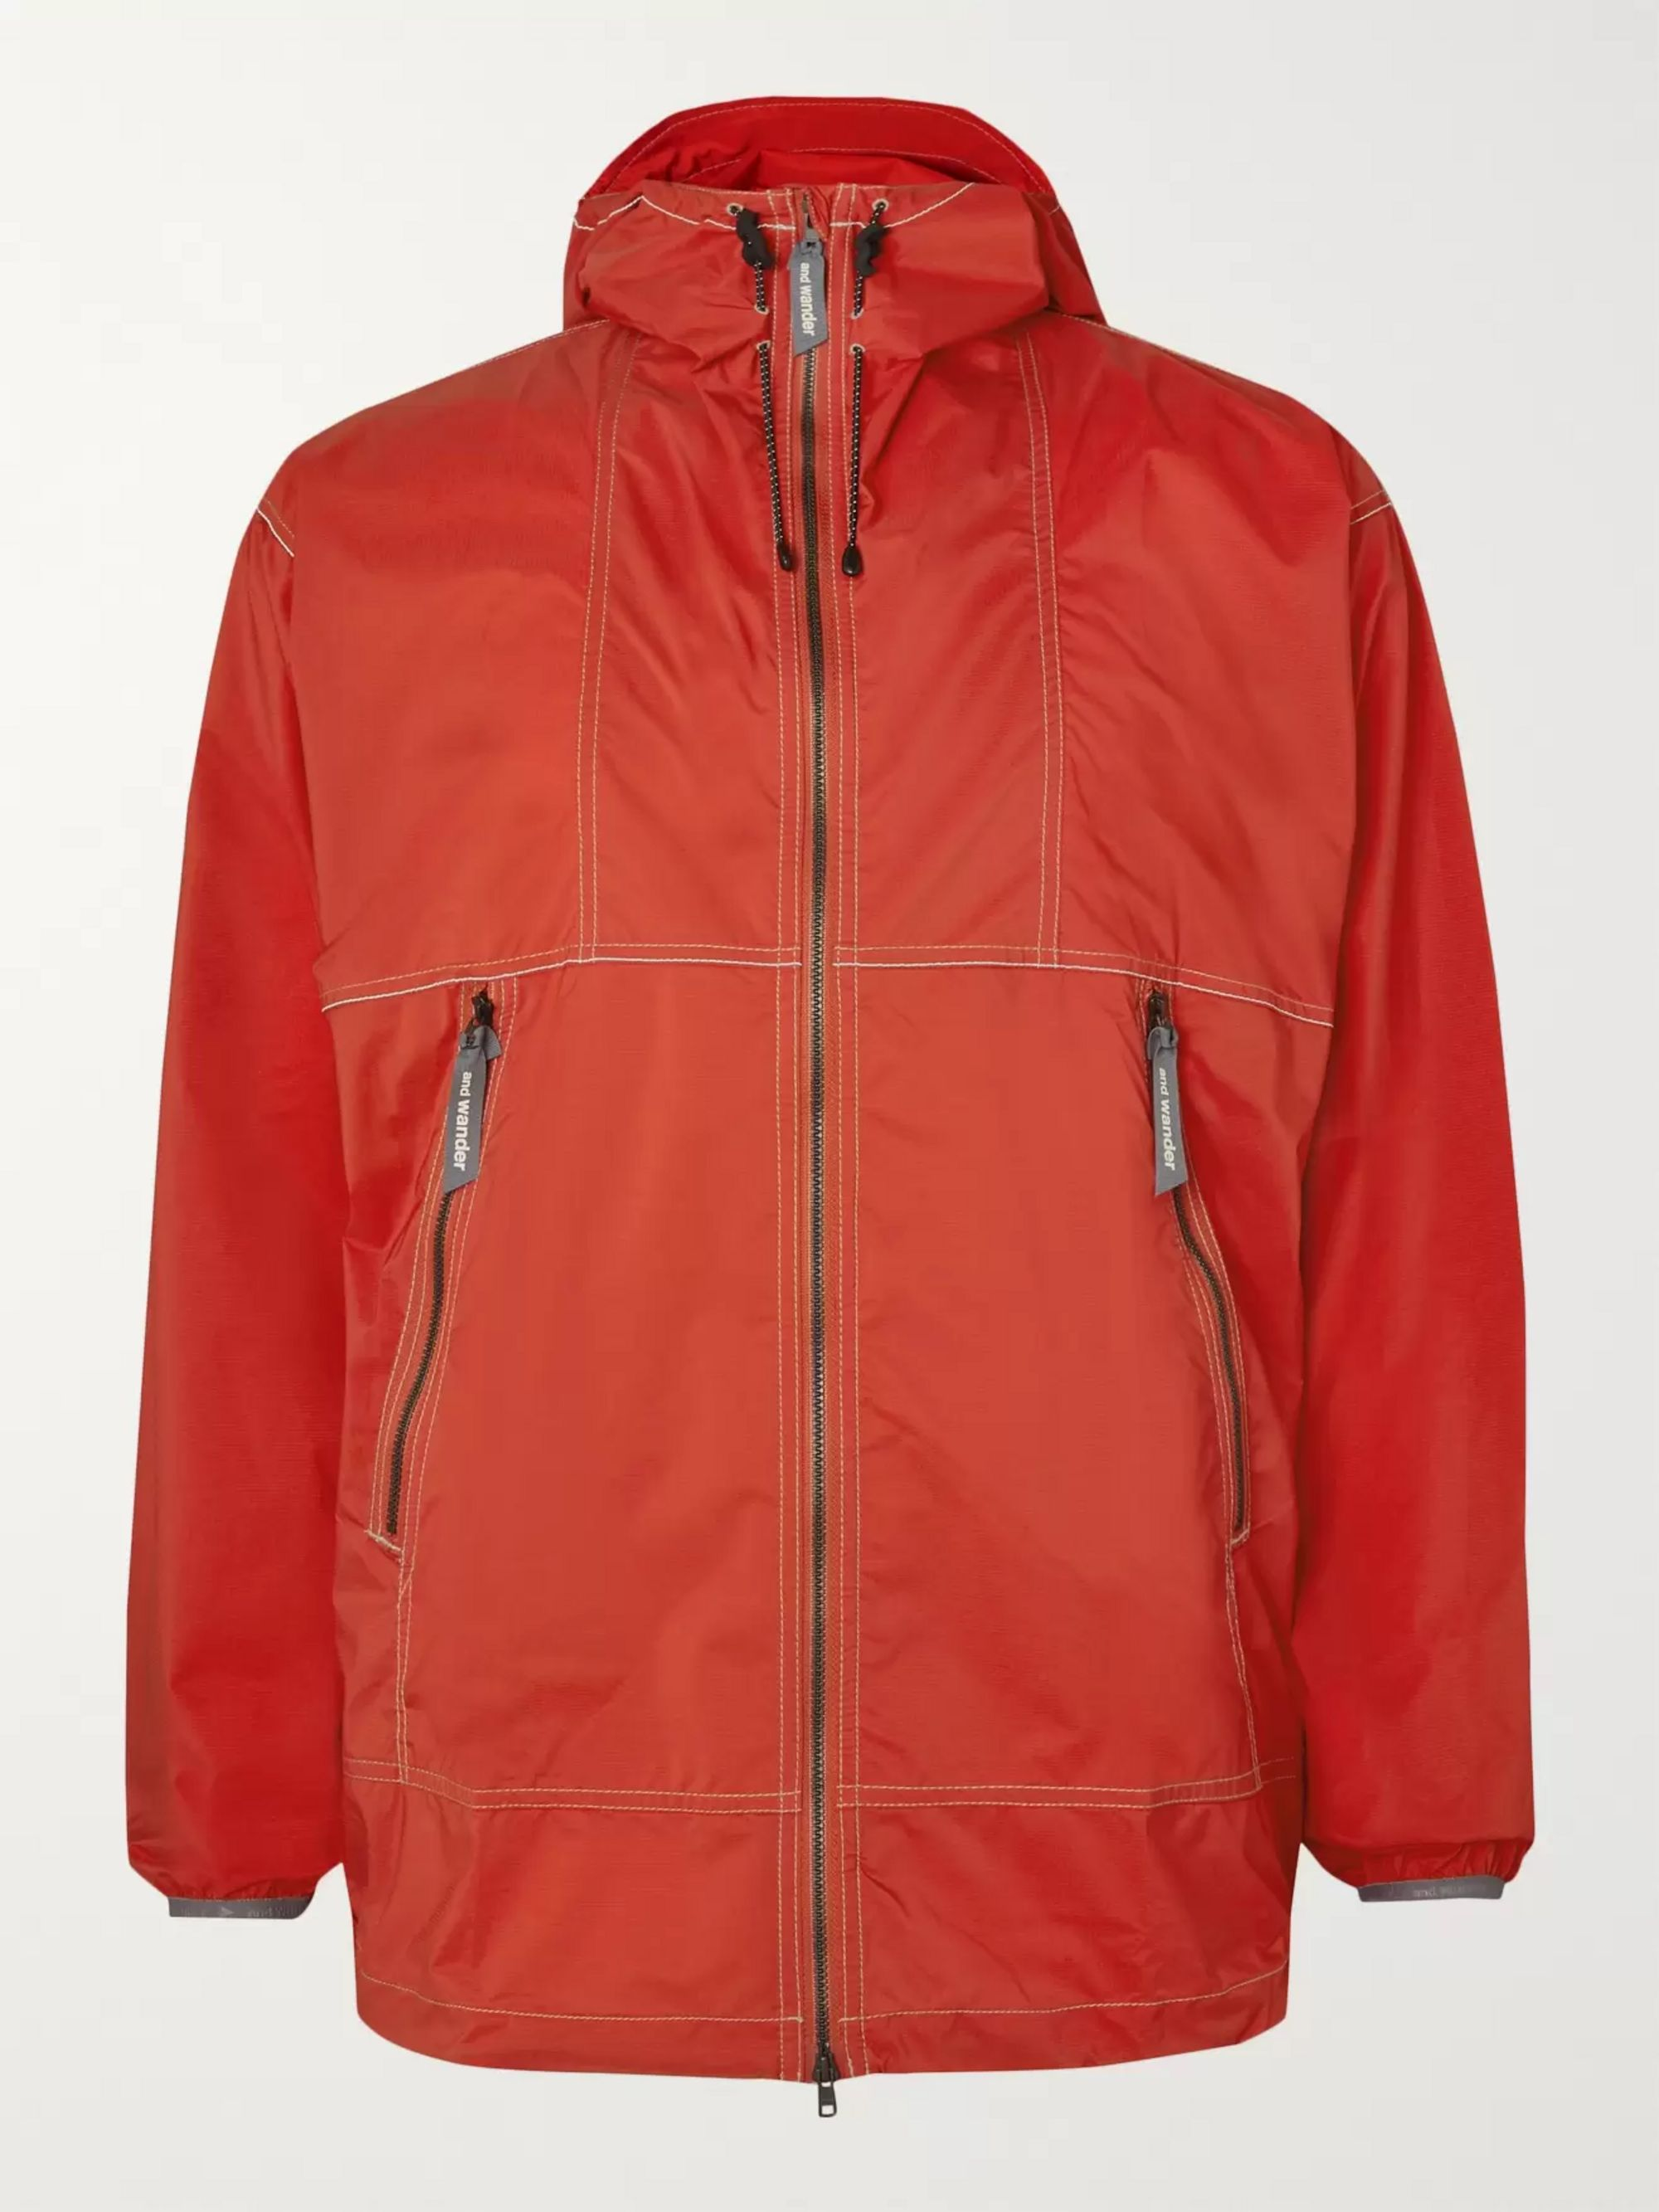 And Wander Pertex Shell Hooded Jacket